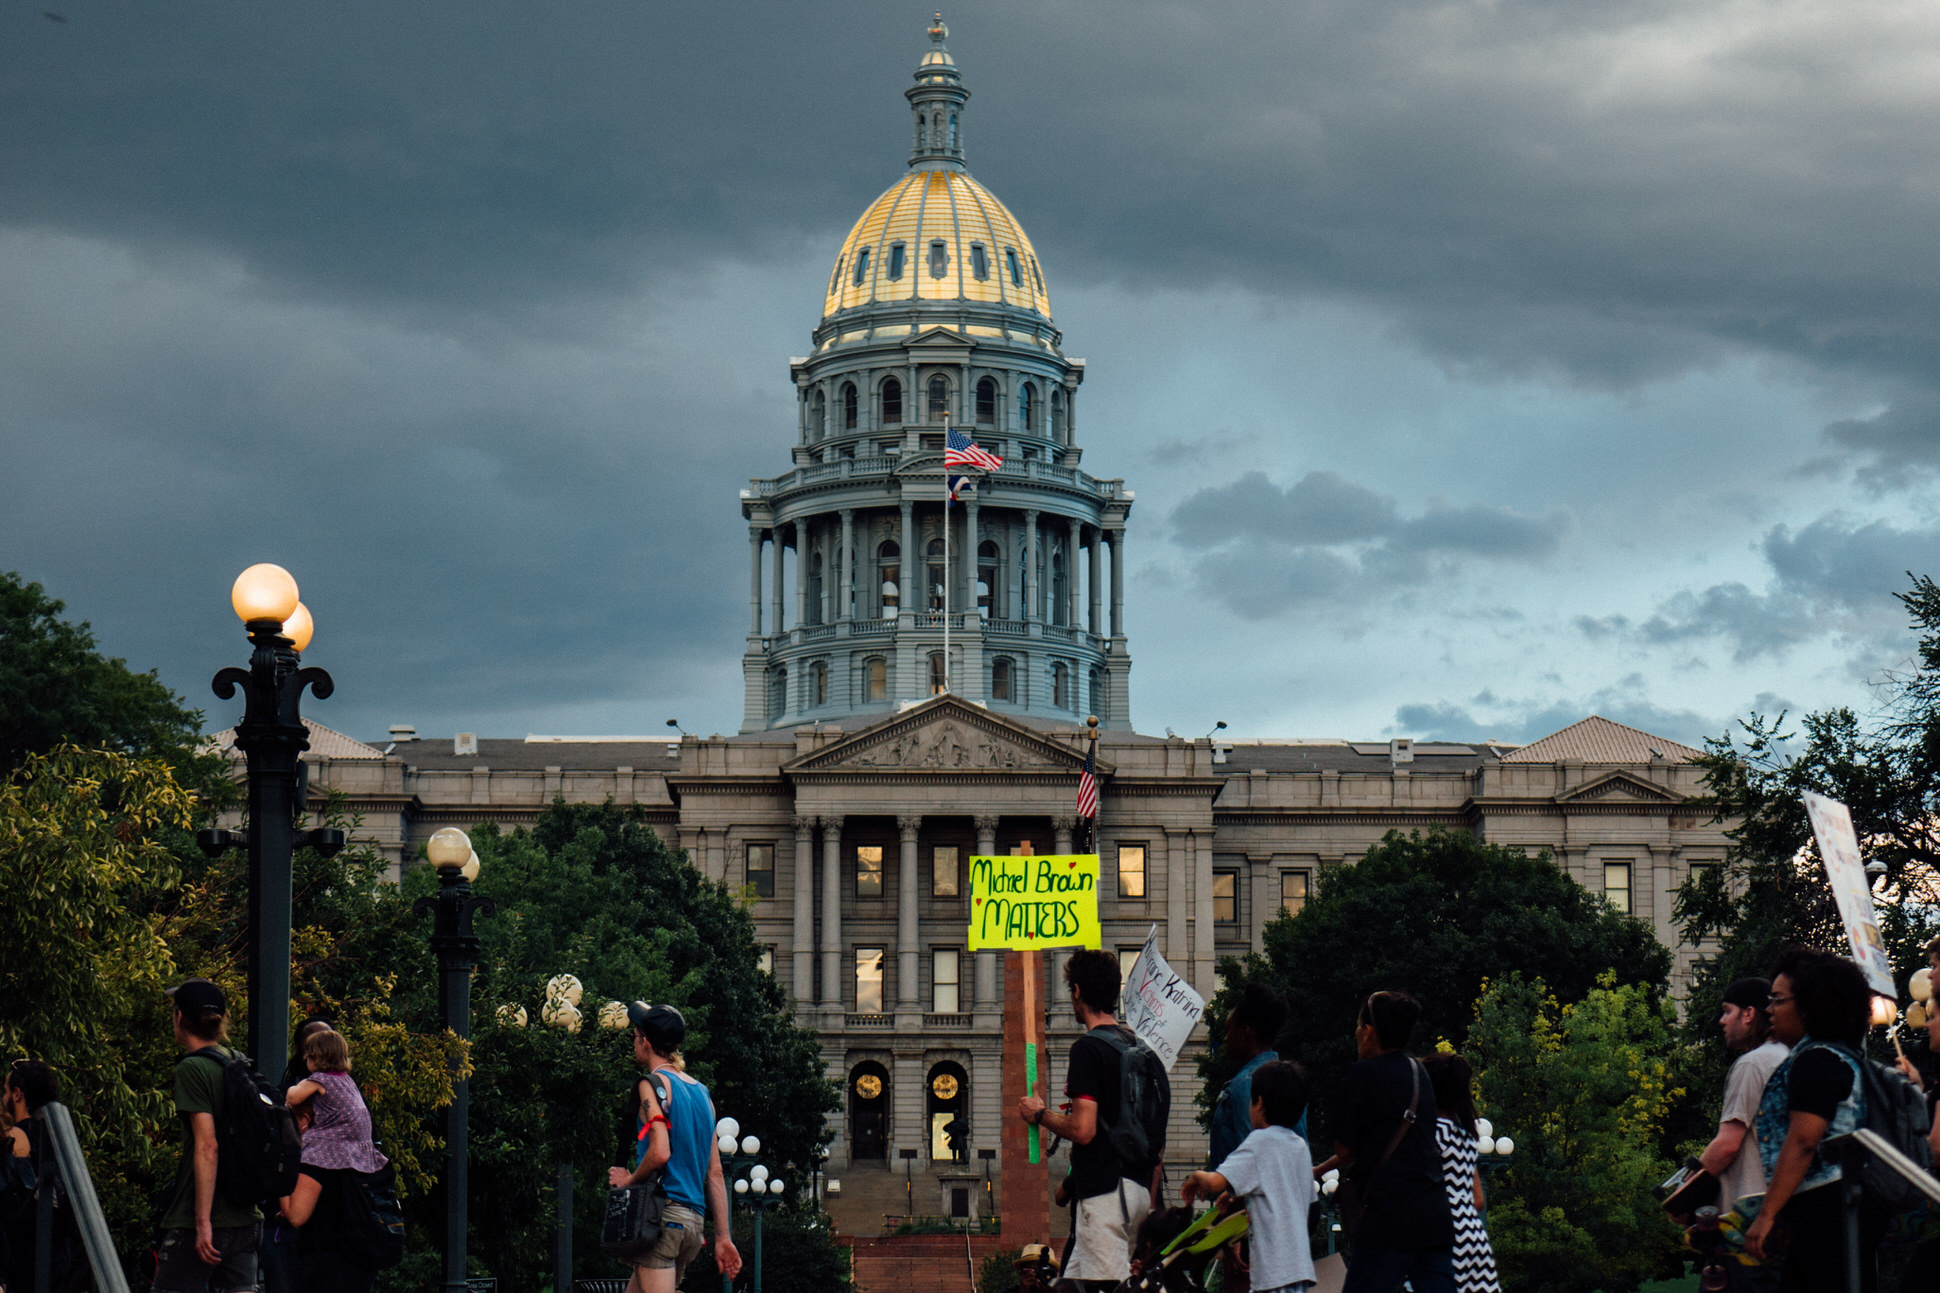 BLM 5280 march leaves Denver's District Courthouse and proceeds to 16th Street Mall.